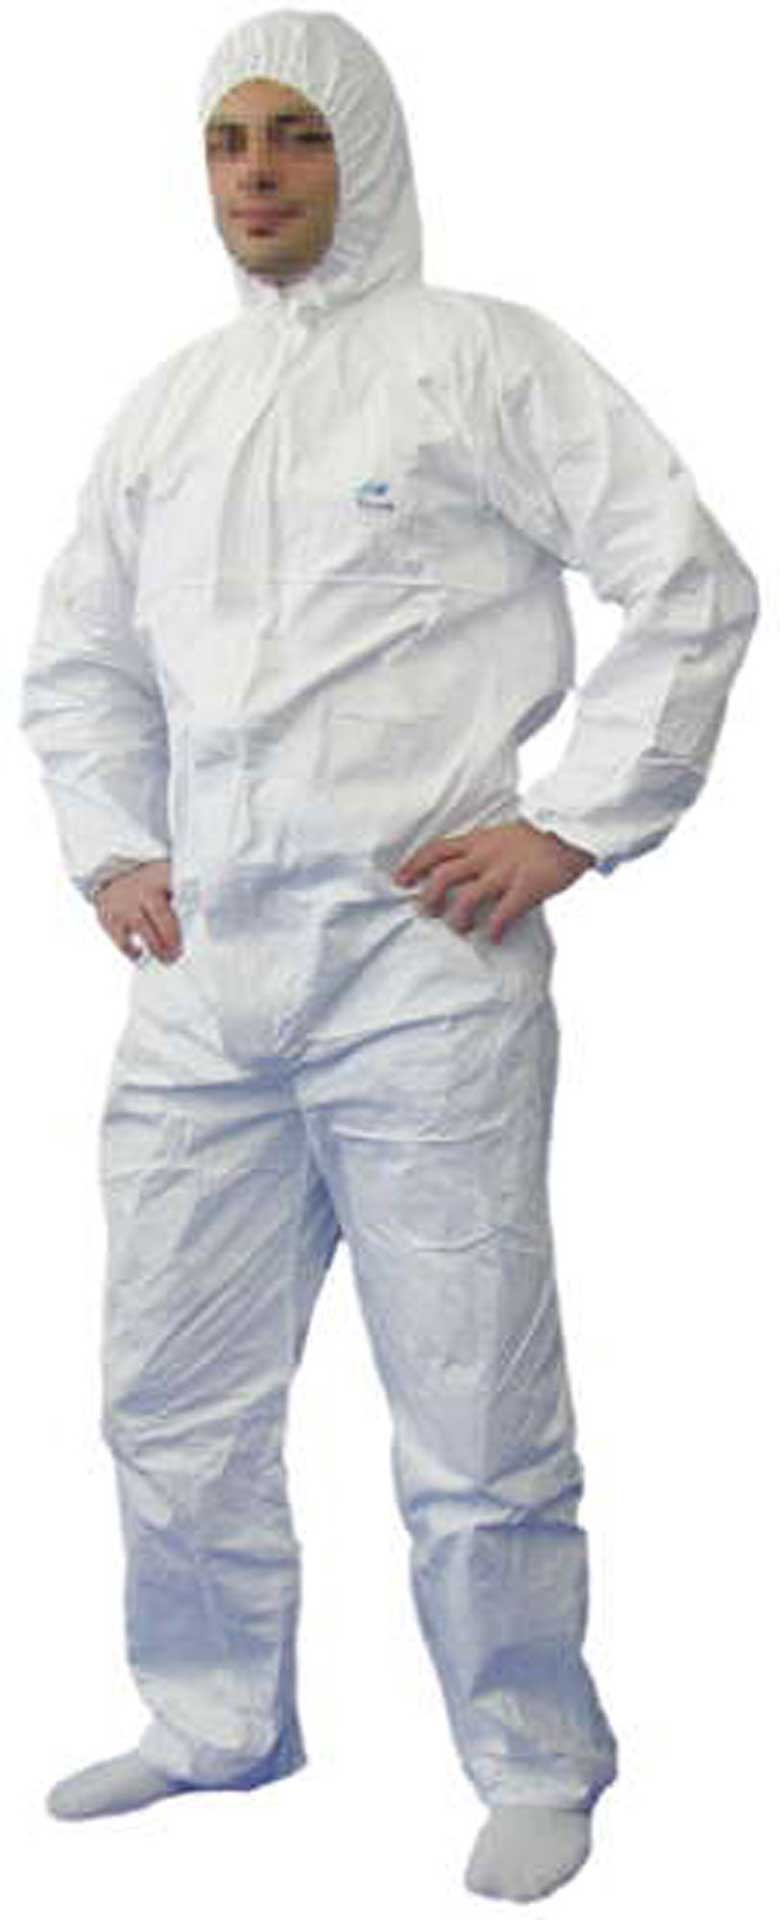 TYVEK PROTECTIVE SUIT GR. XL (58/60) CHEMICAL PROTECTIVE CLOTHING - CATEGORY III, TYPE 5/6